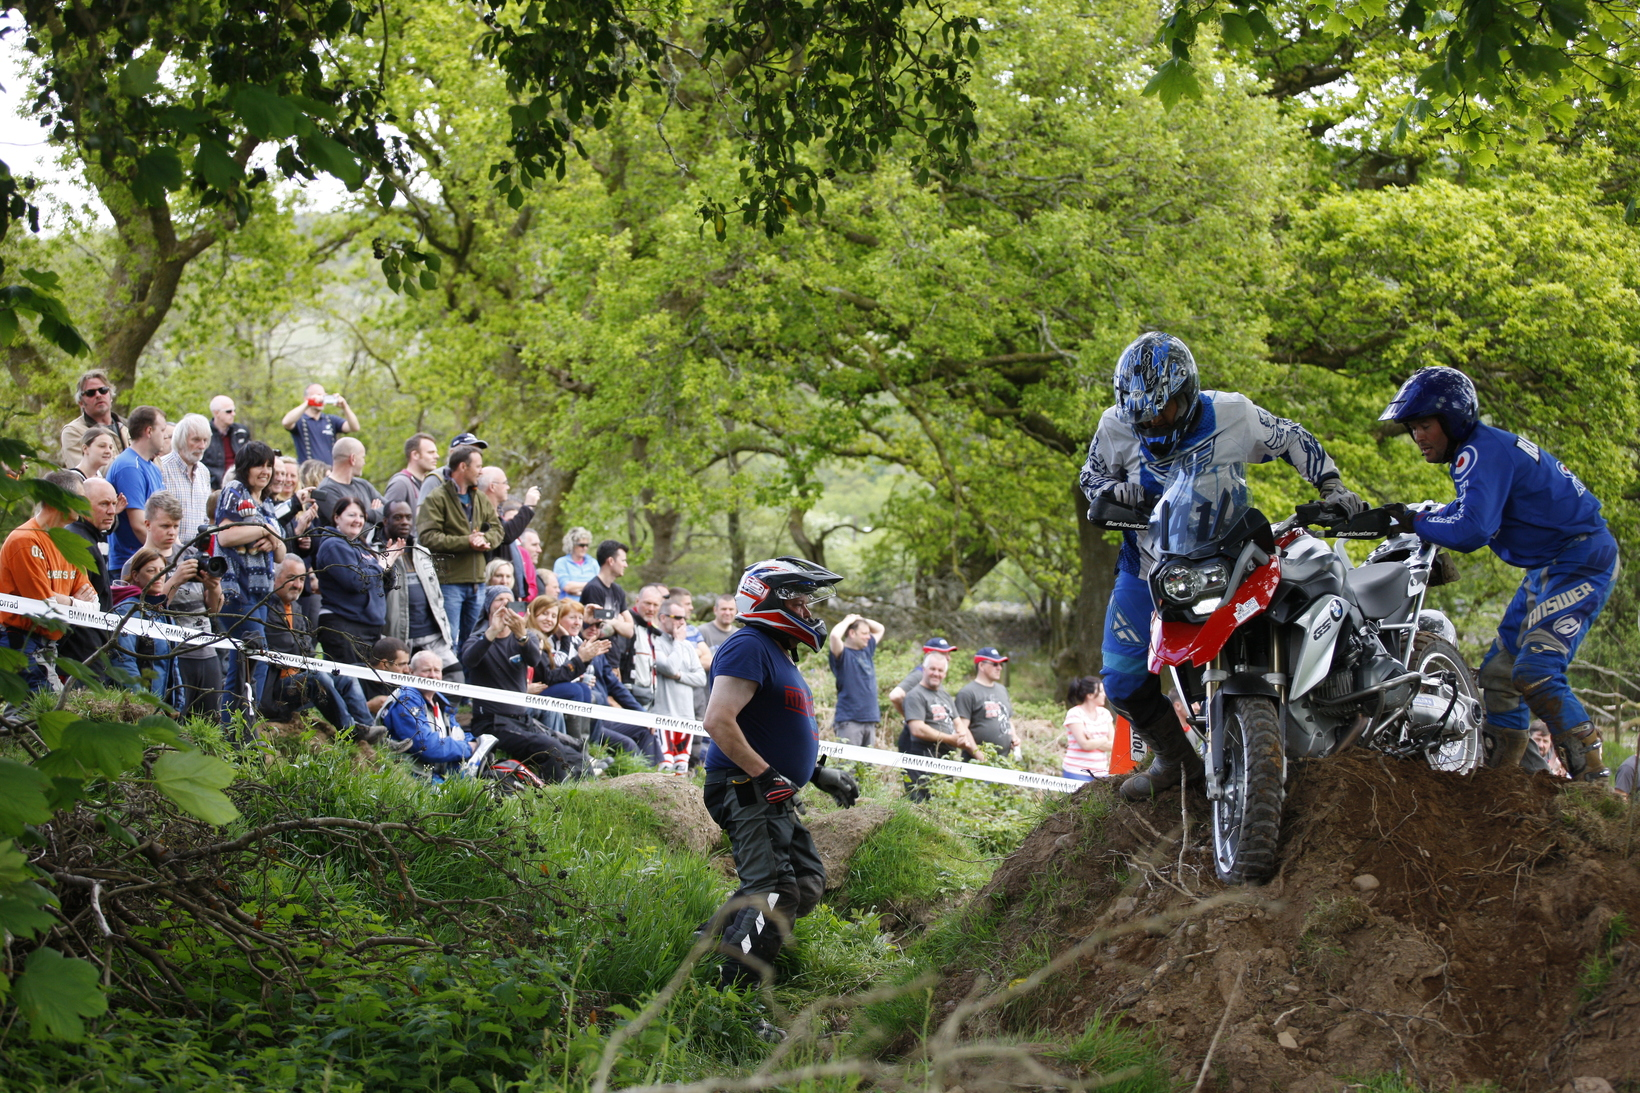 Introducing the BMW Motorrad UK GS Challenge